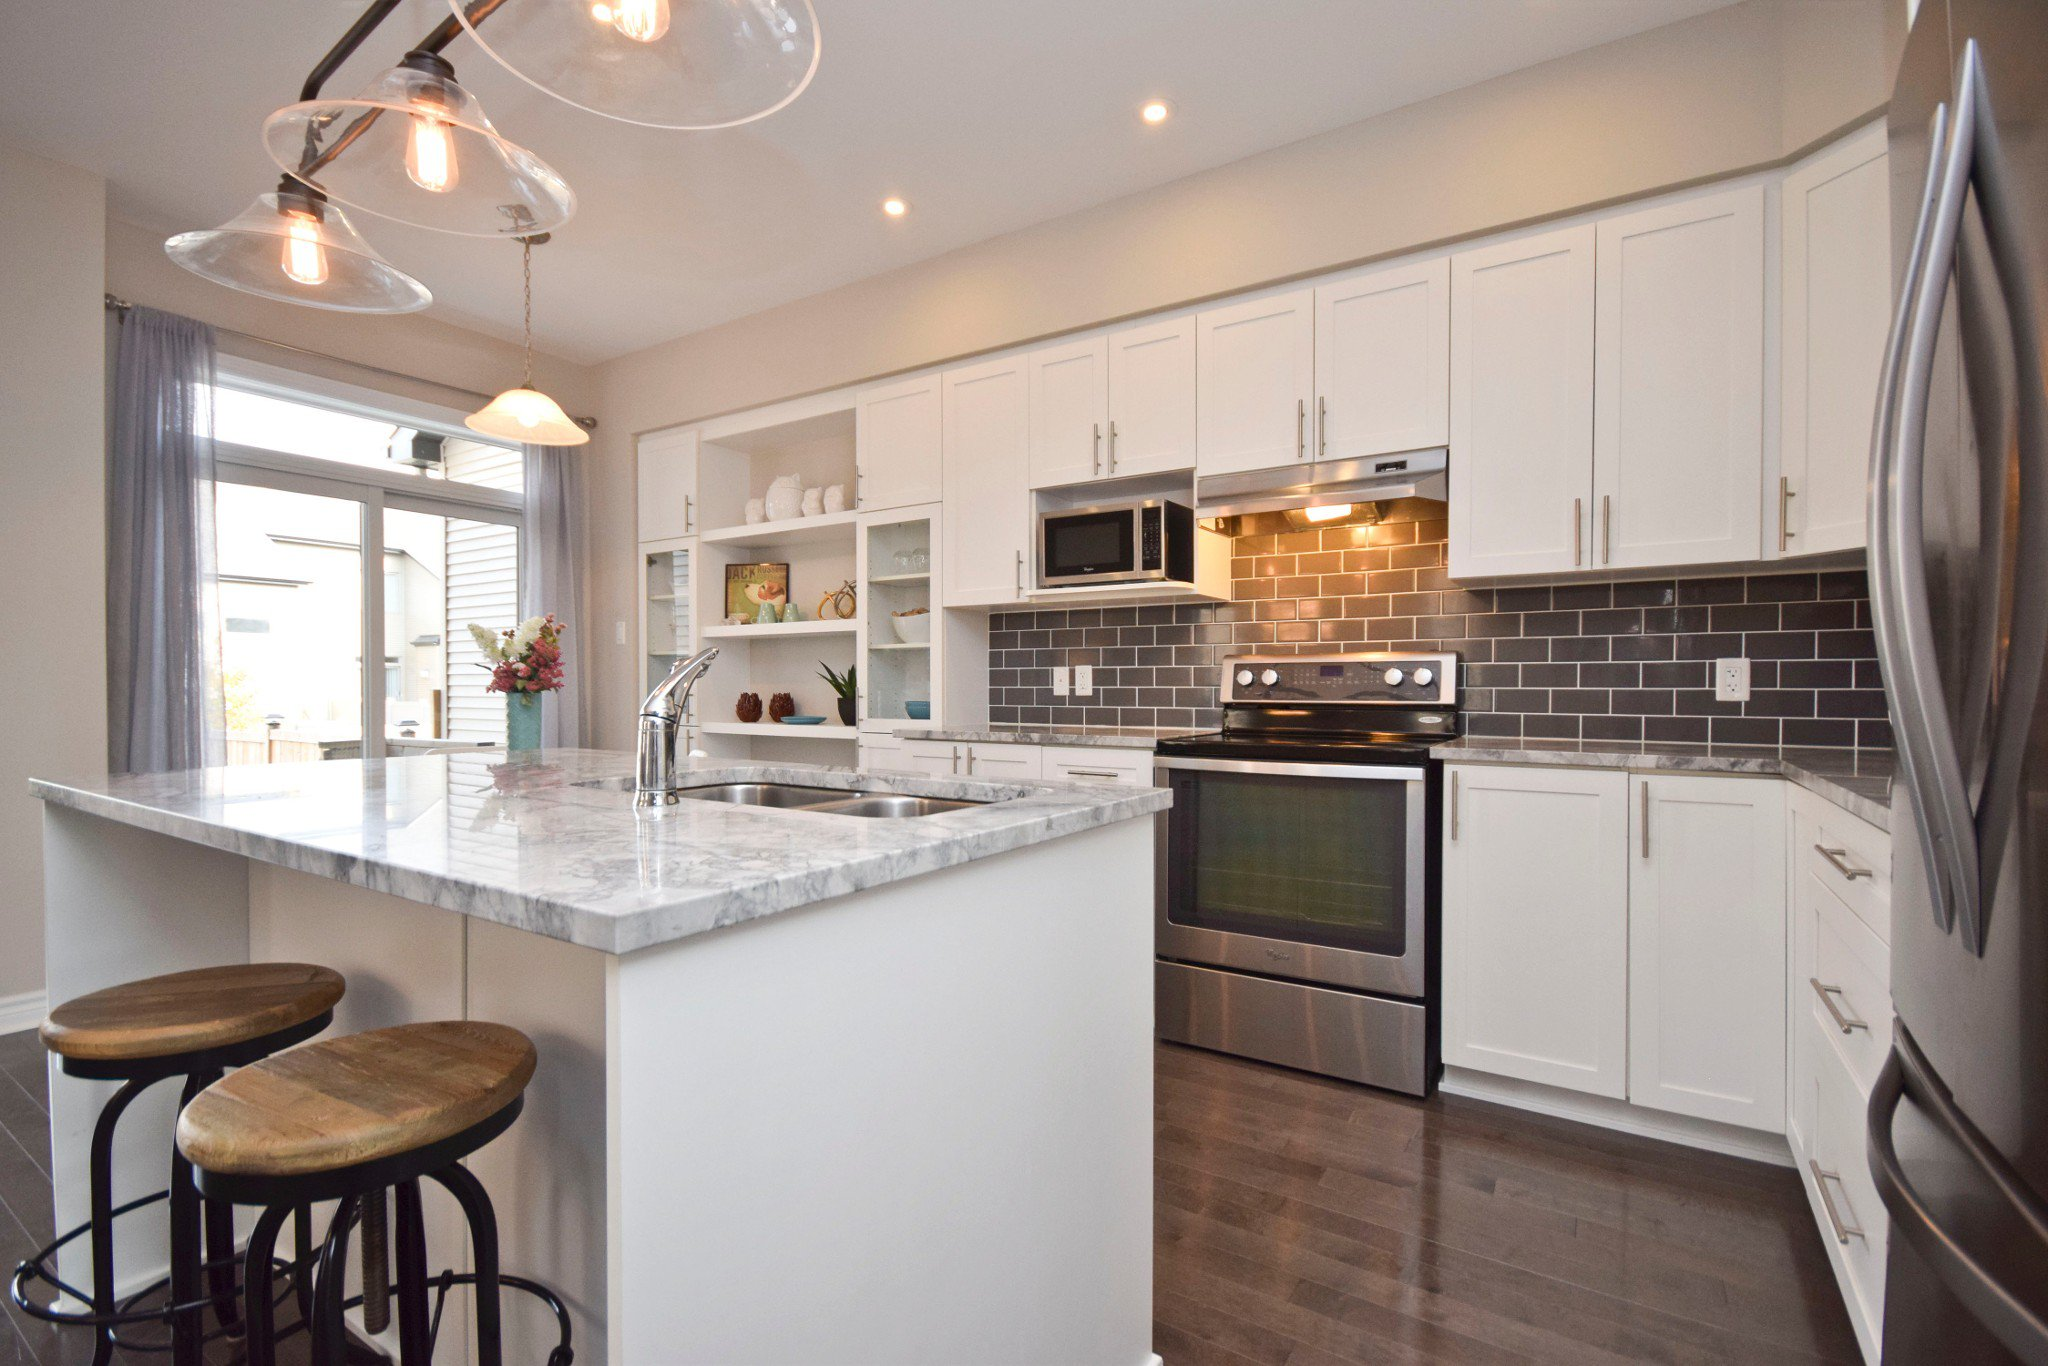 Photo 23: Photos: 131 Popplewell Crescent in Ottawa: Cedargrove / Fraserdale House for sale (Barrhaven)  : MLS®# 1130335